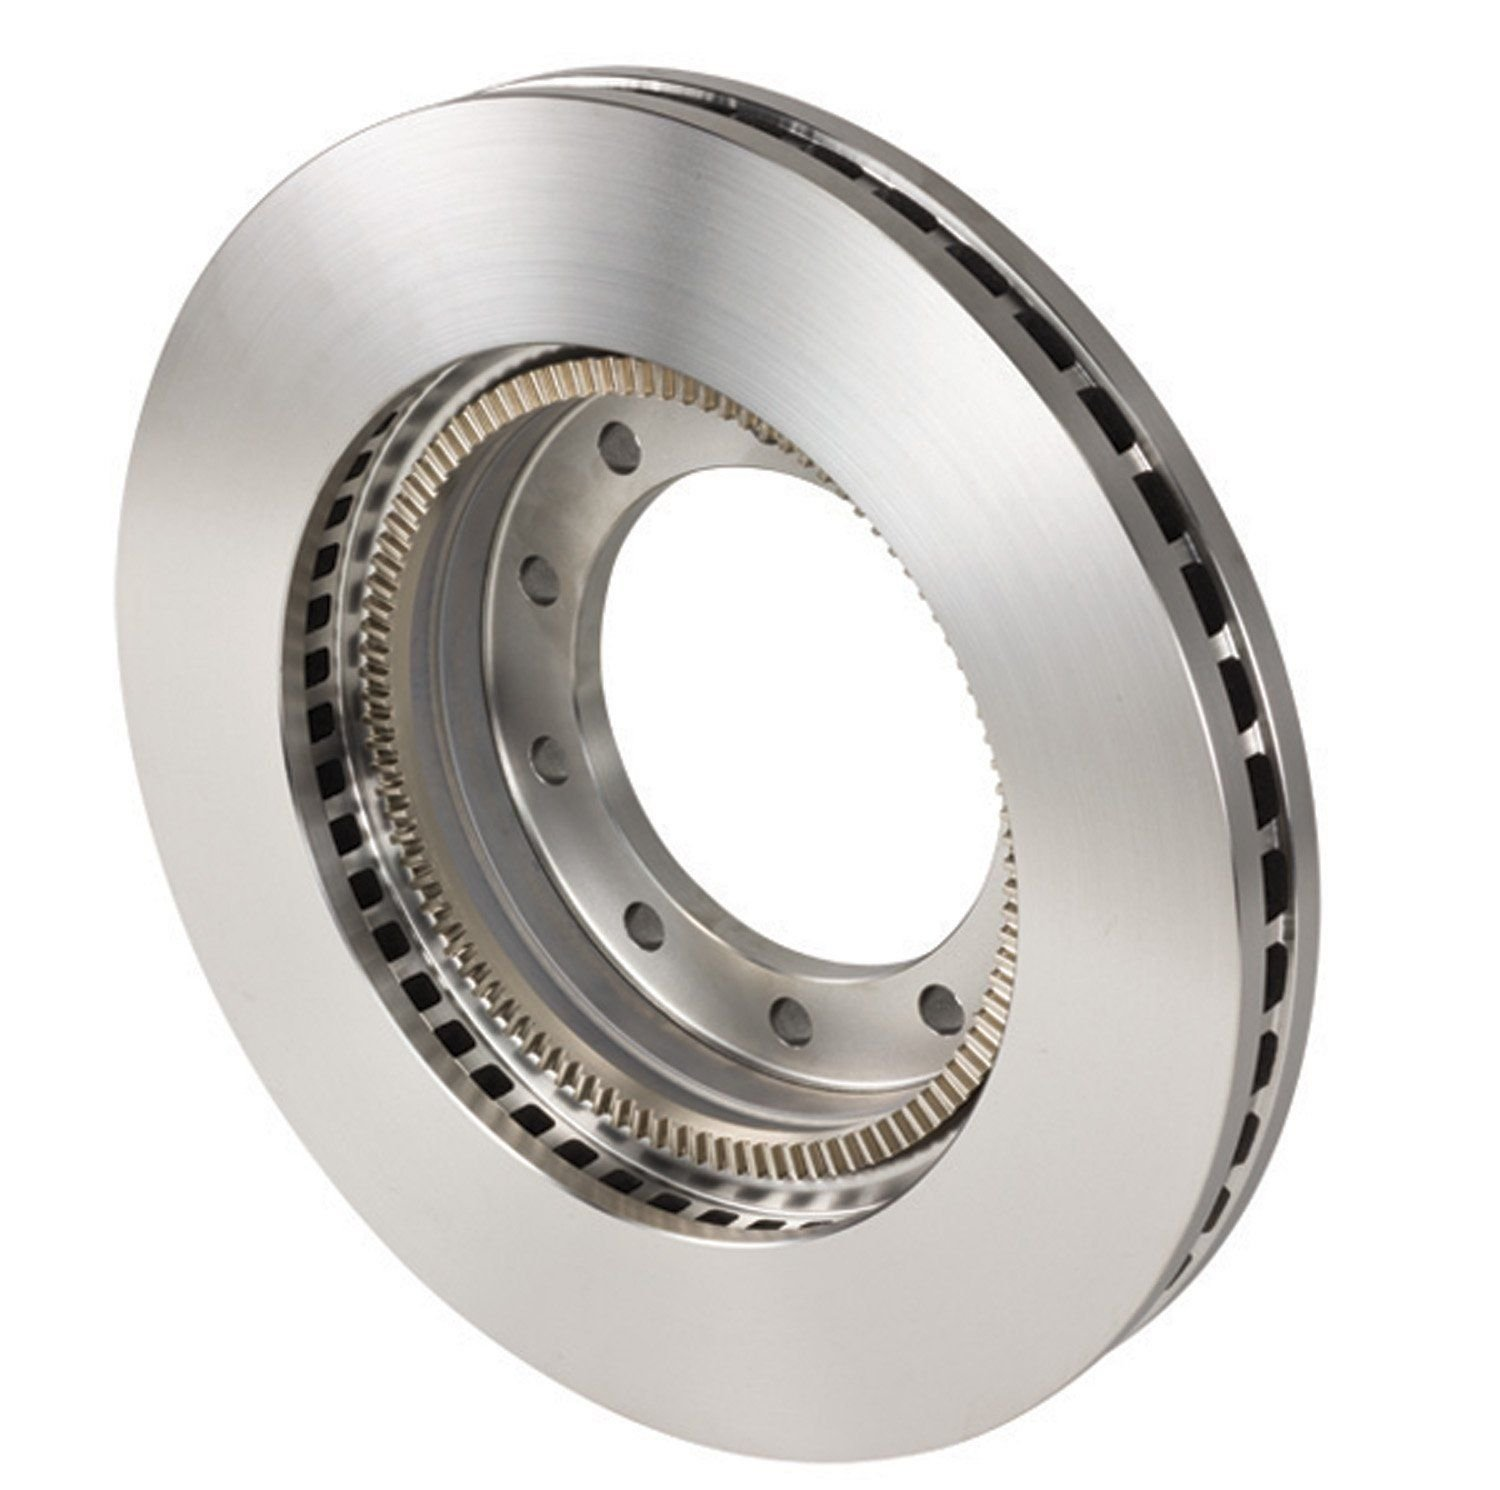 Cadillac Deville Disc Brake Rotor Replacement Acdelco Bosch 1978 On Blades 1997 Front Performance Friction 30305201